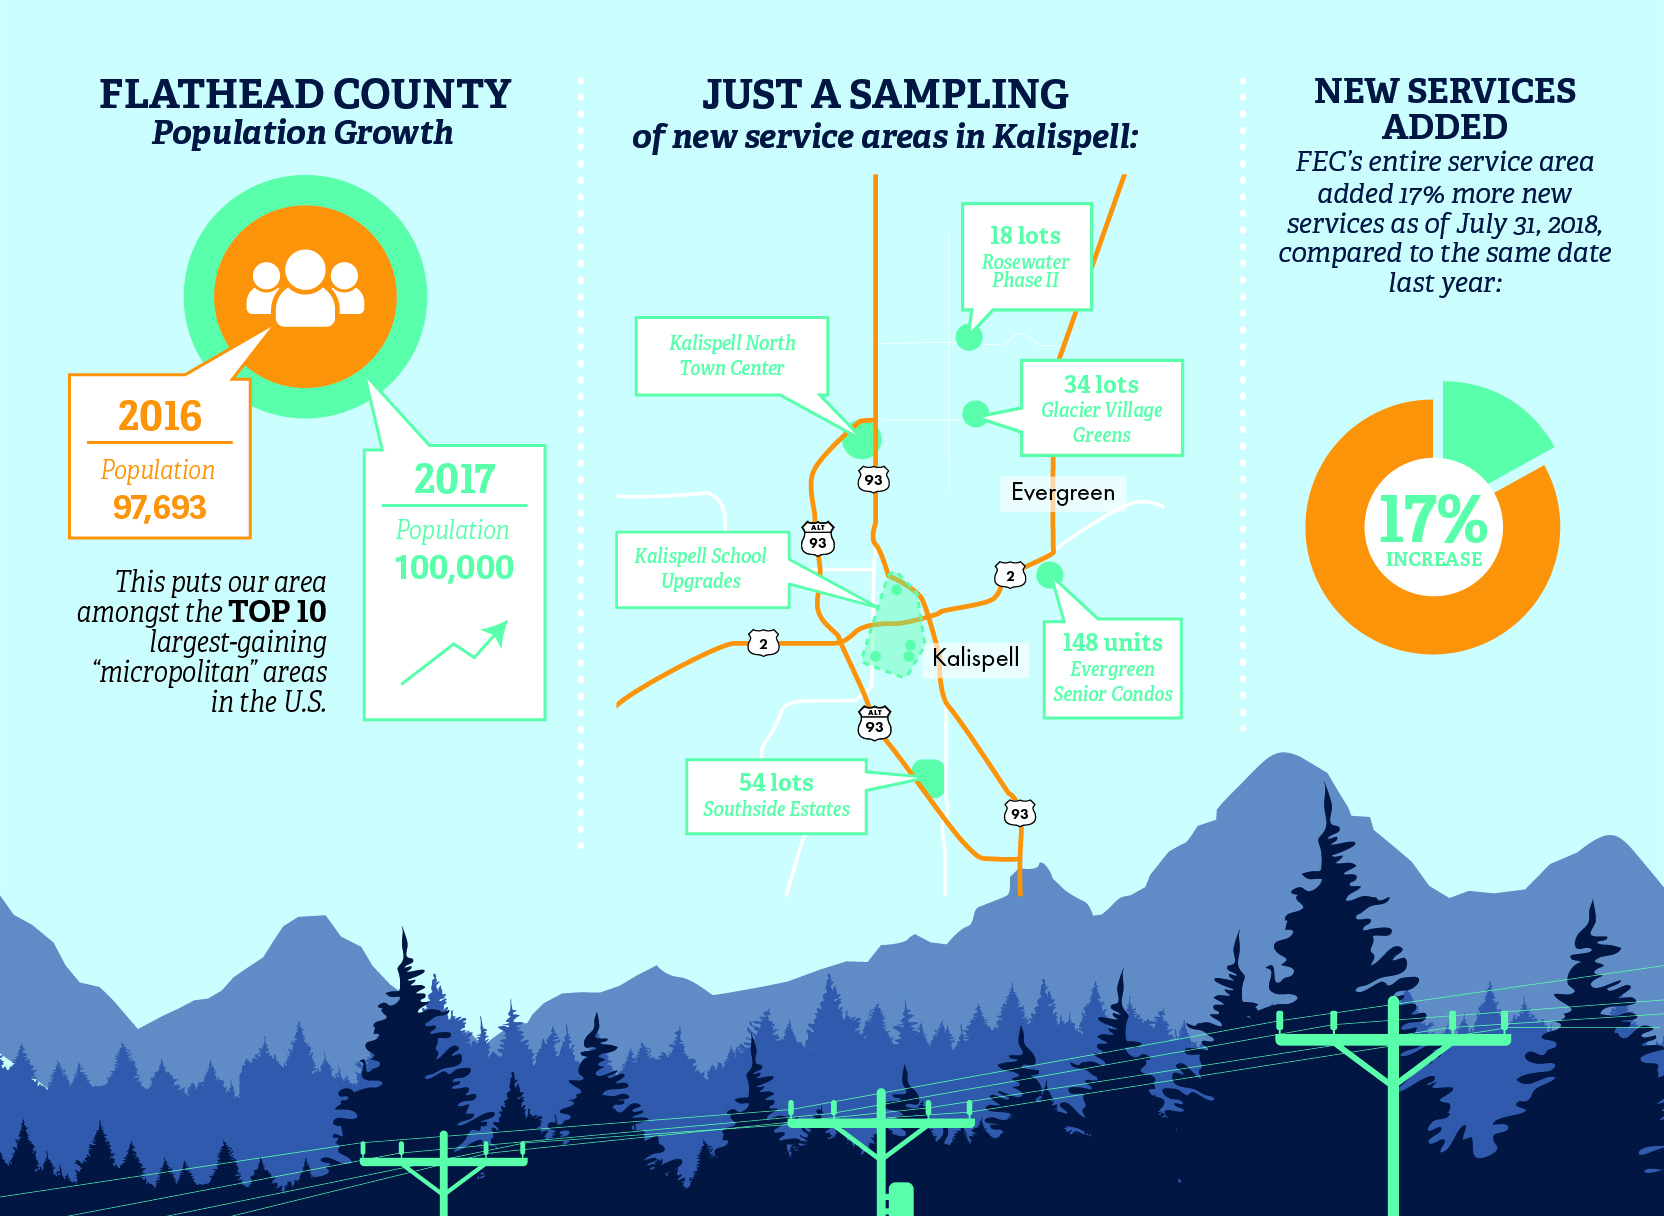 Flathead County Growth adds New Electric Services